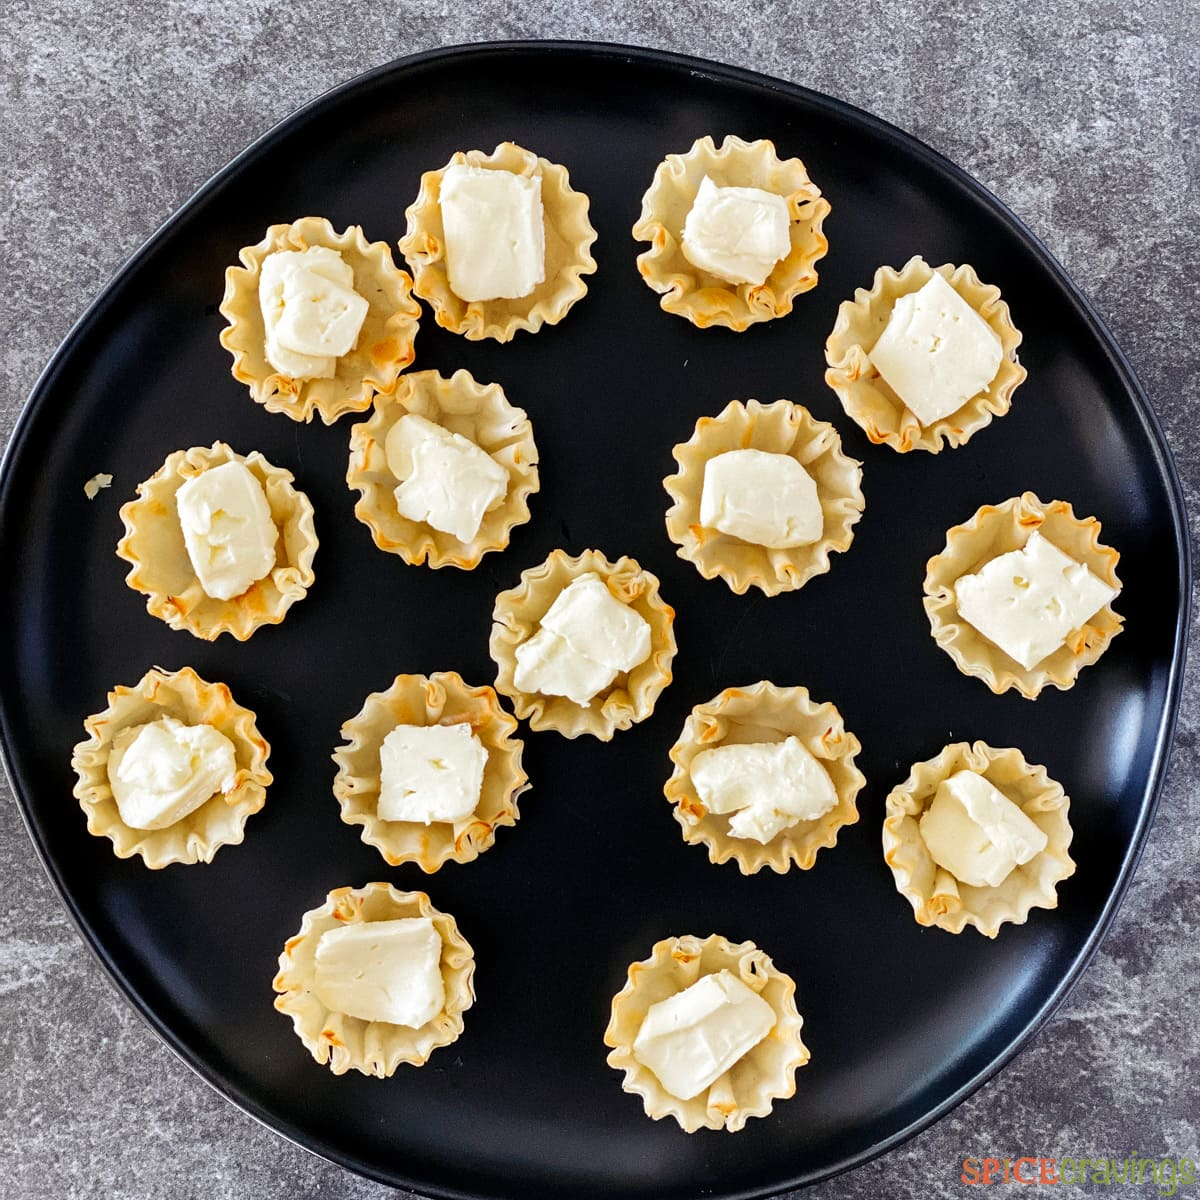 Brie added to phyllo cups